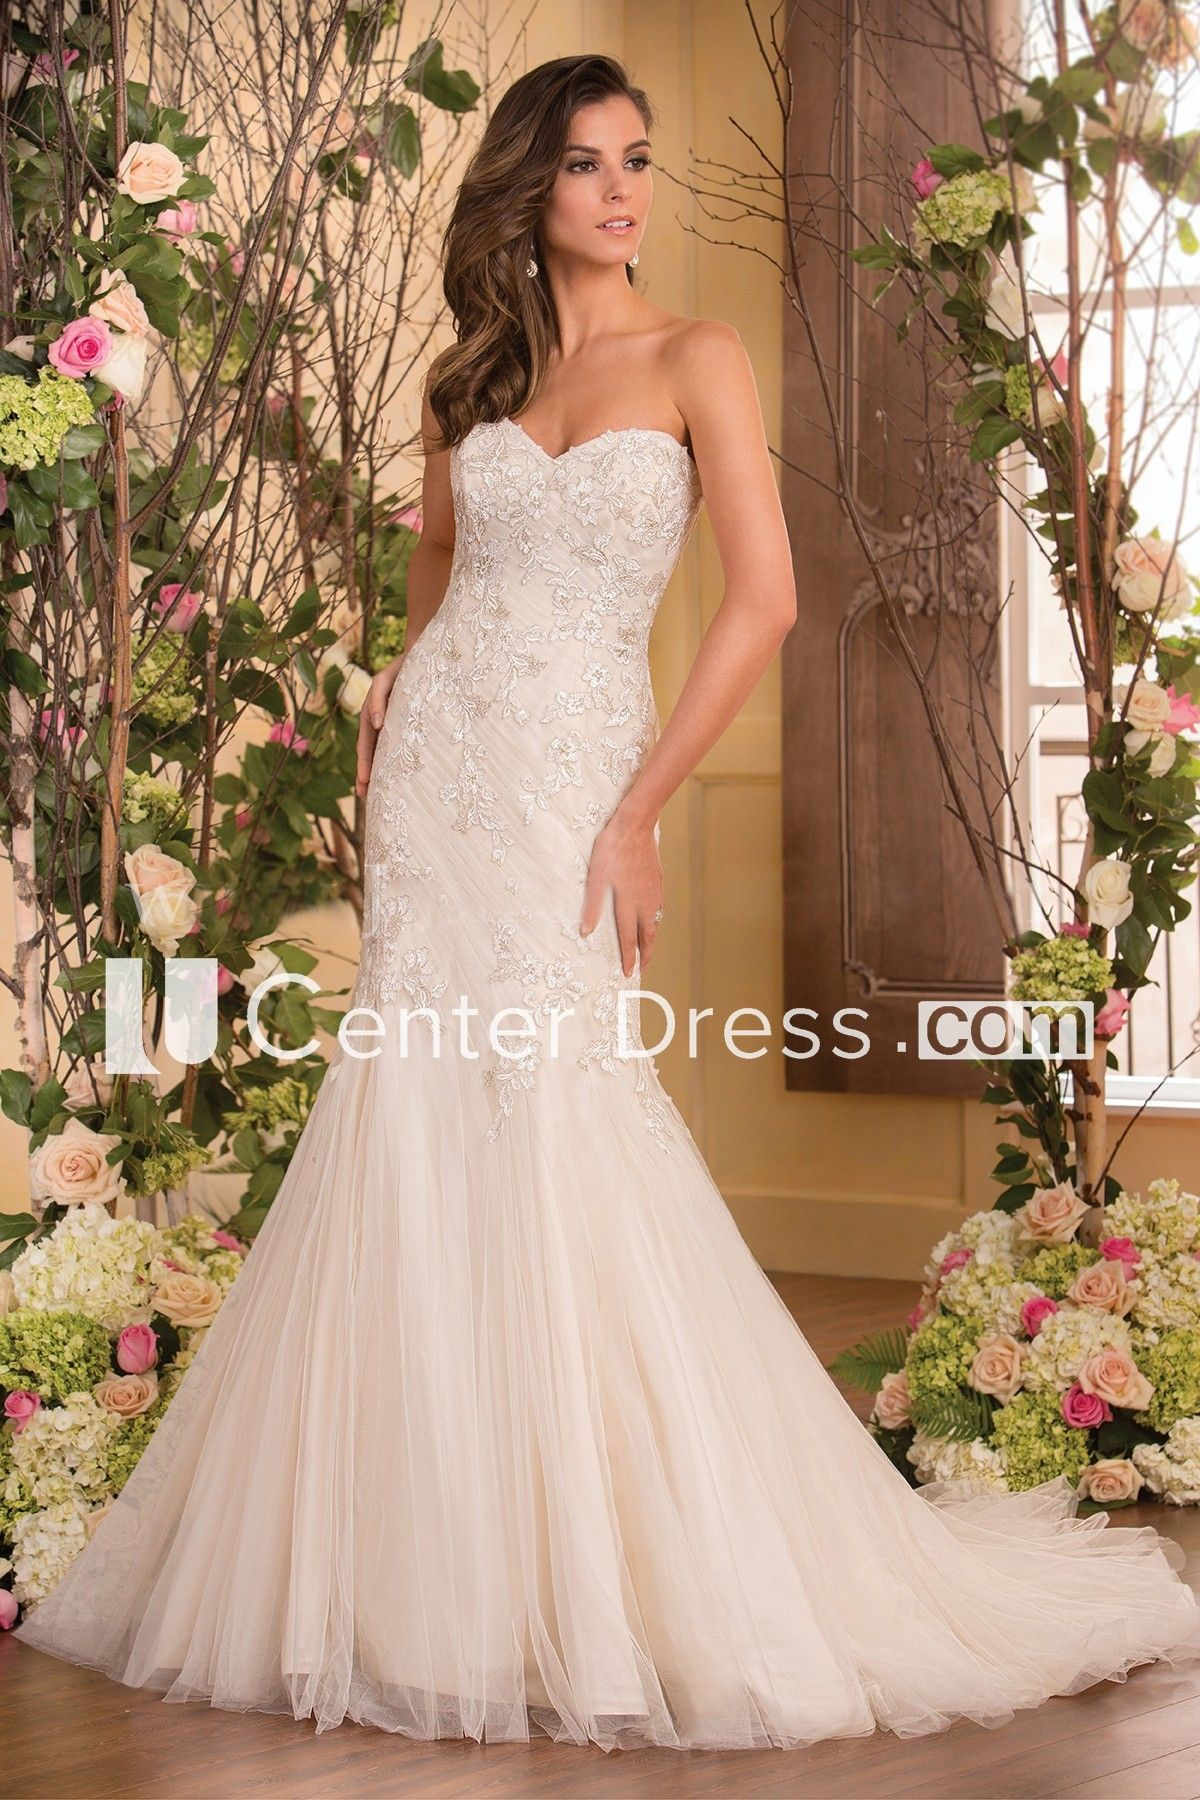 Sweetheart Mermaid Gown With Bow Tie And Appliques | Mermaid gown ...